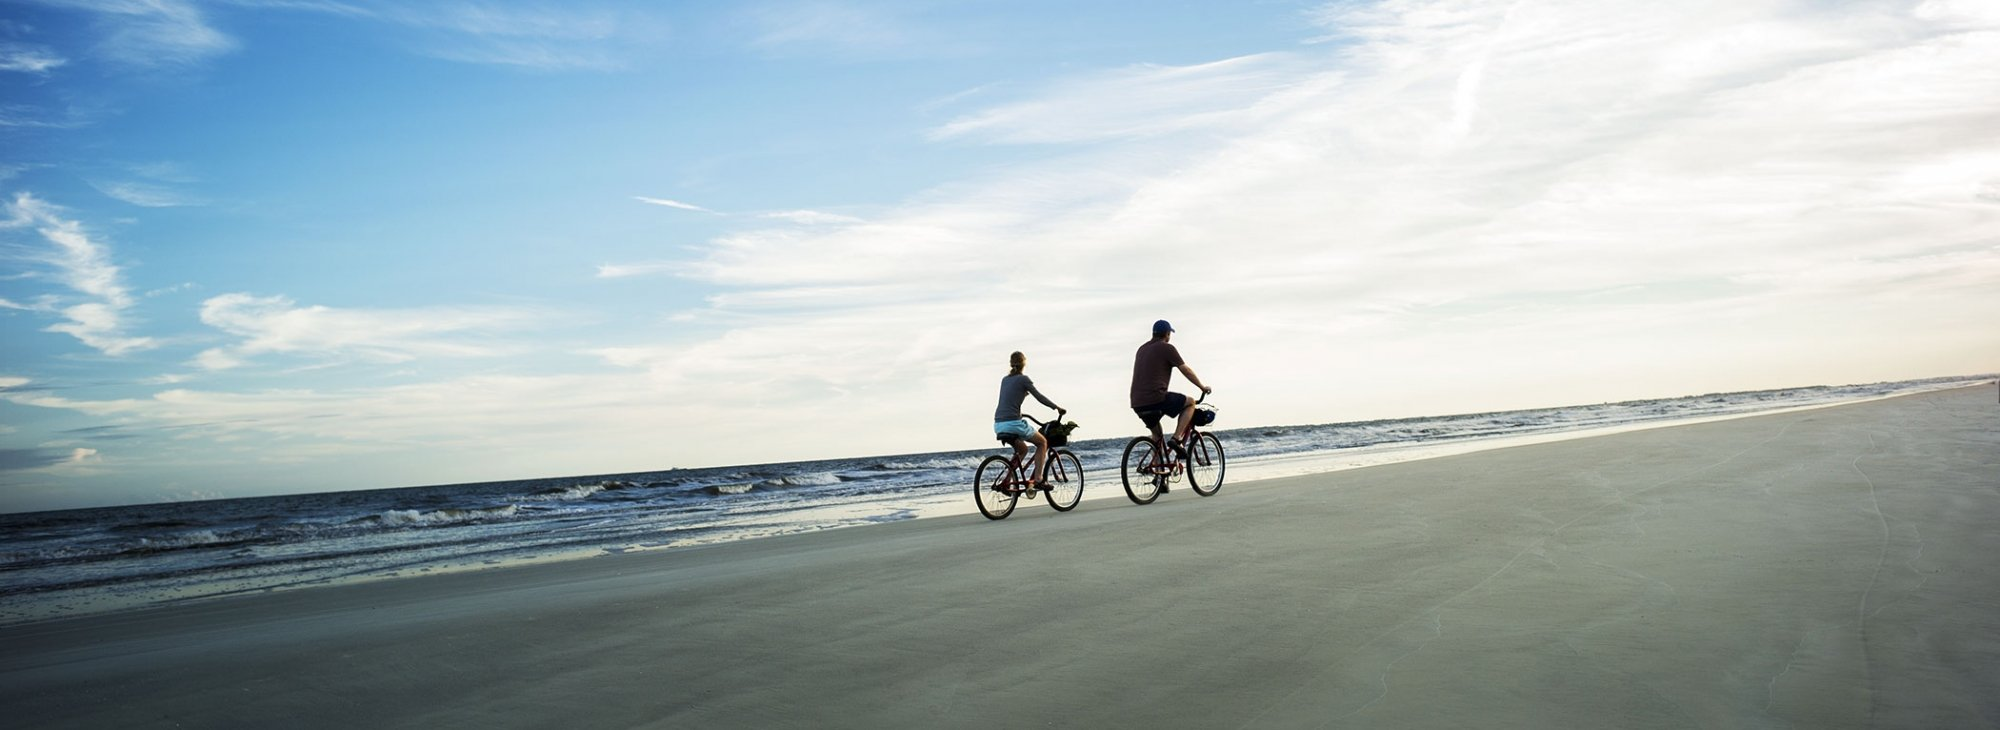 Cyclists on the beach